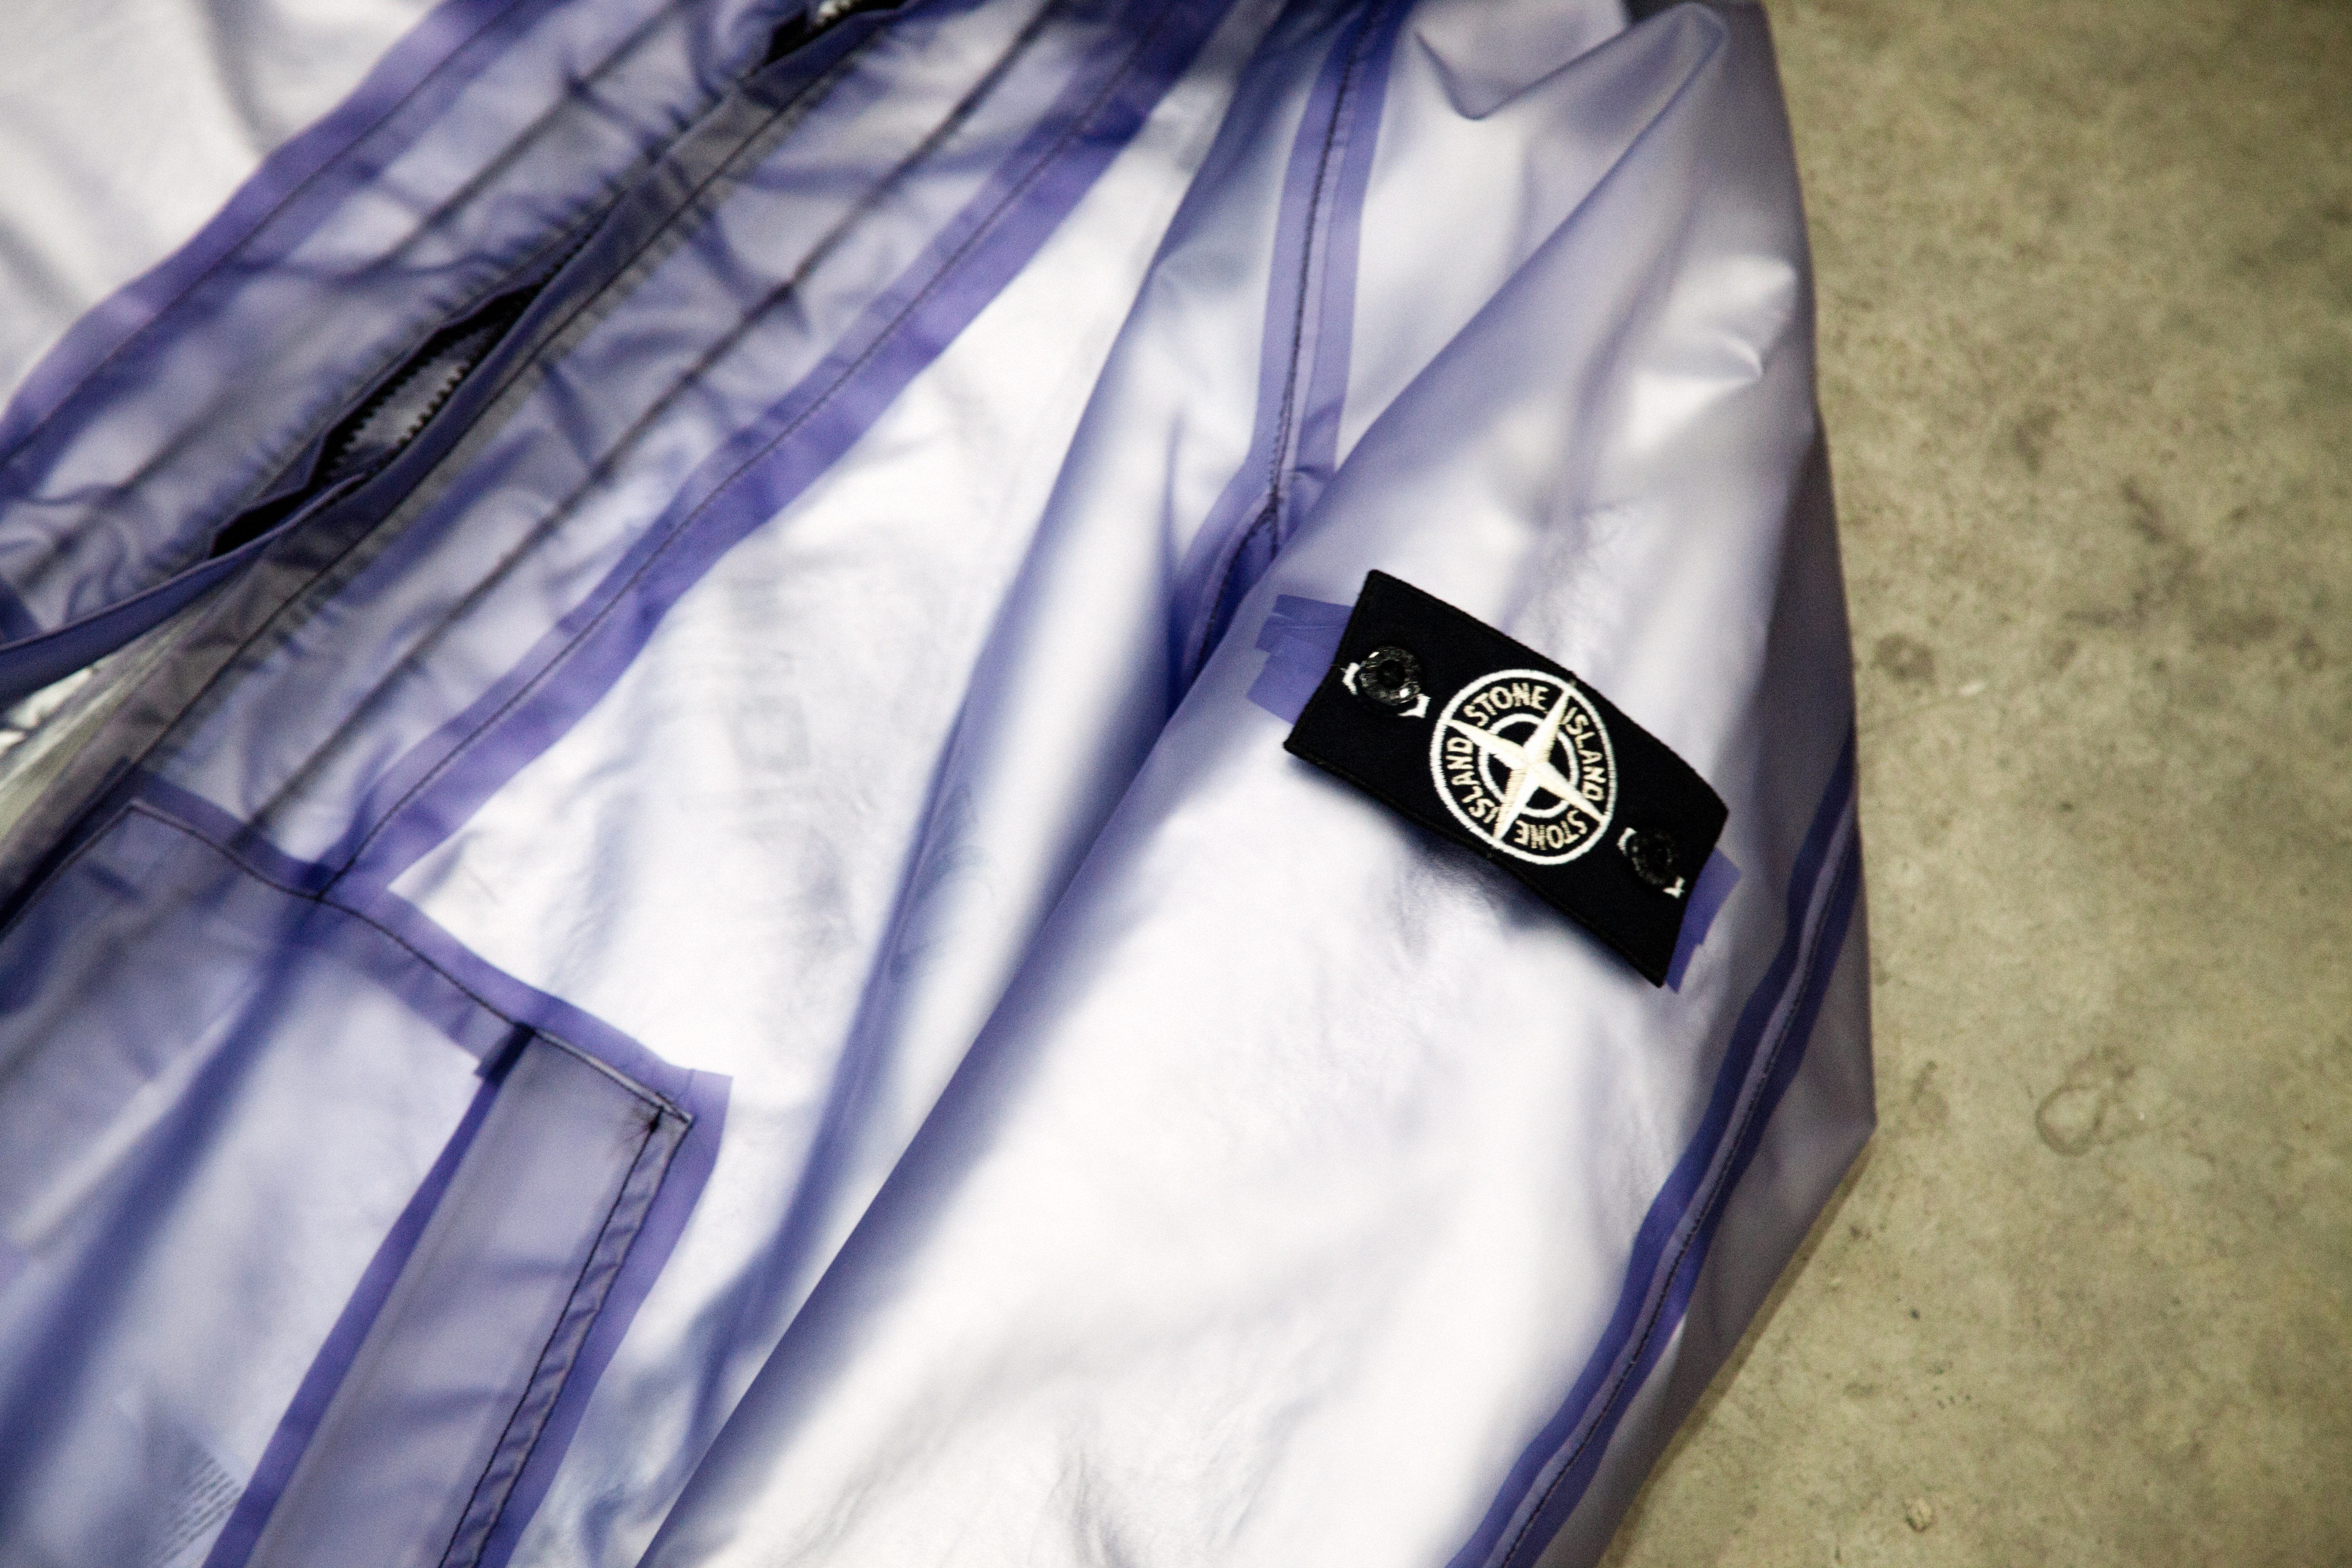 5fb348b18df07 On a visit to Ravarino, north of Florence in Italy, our editorial team was  granted access to Stone Island's progressive lab, prototyping and testing  ...